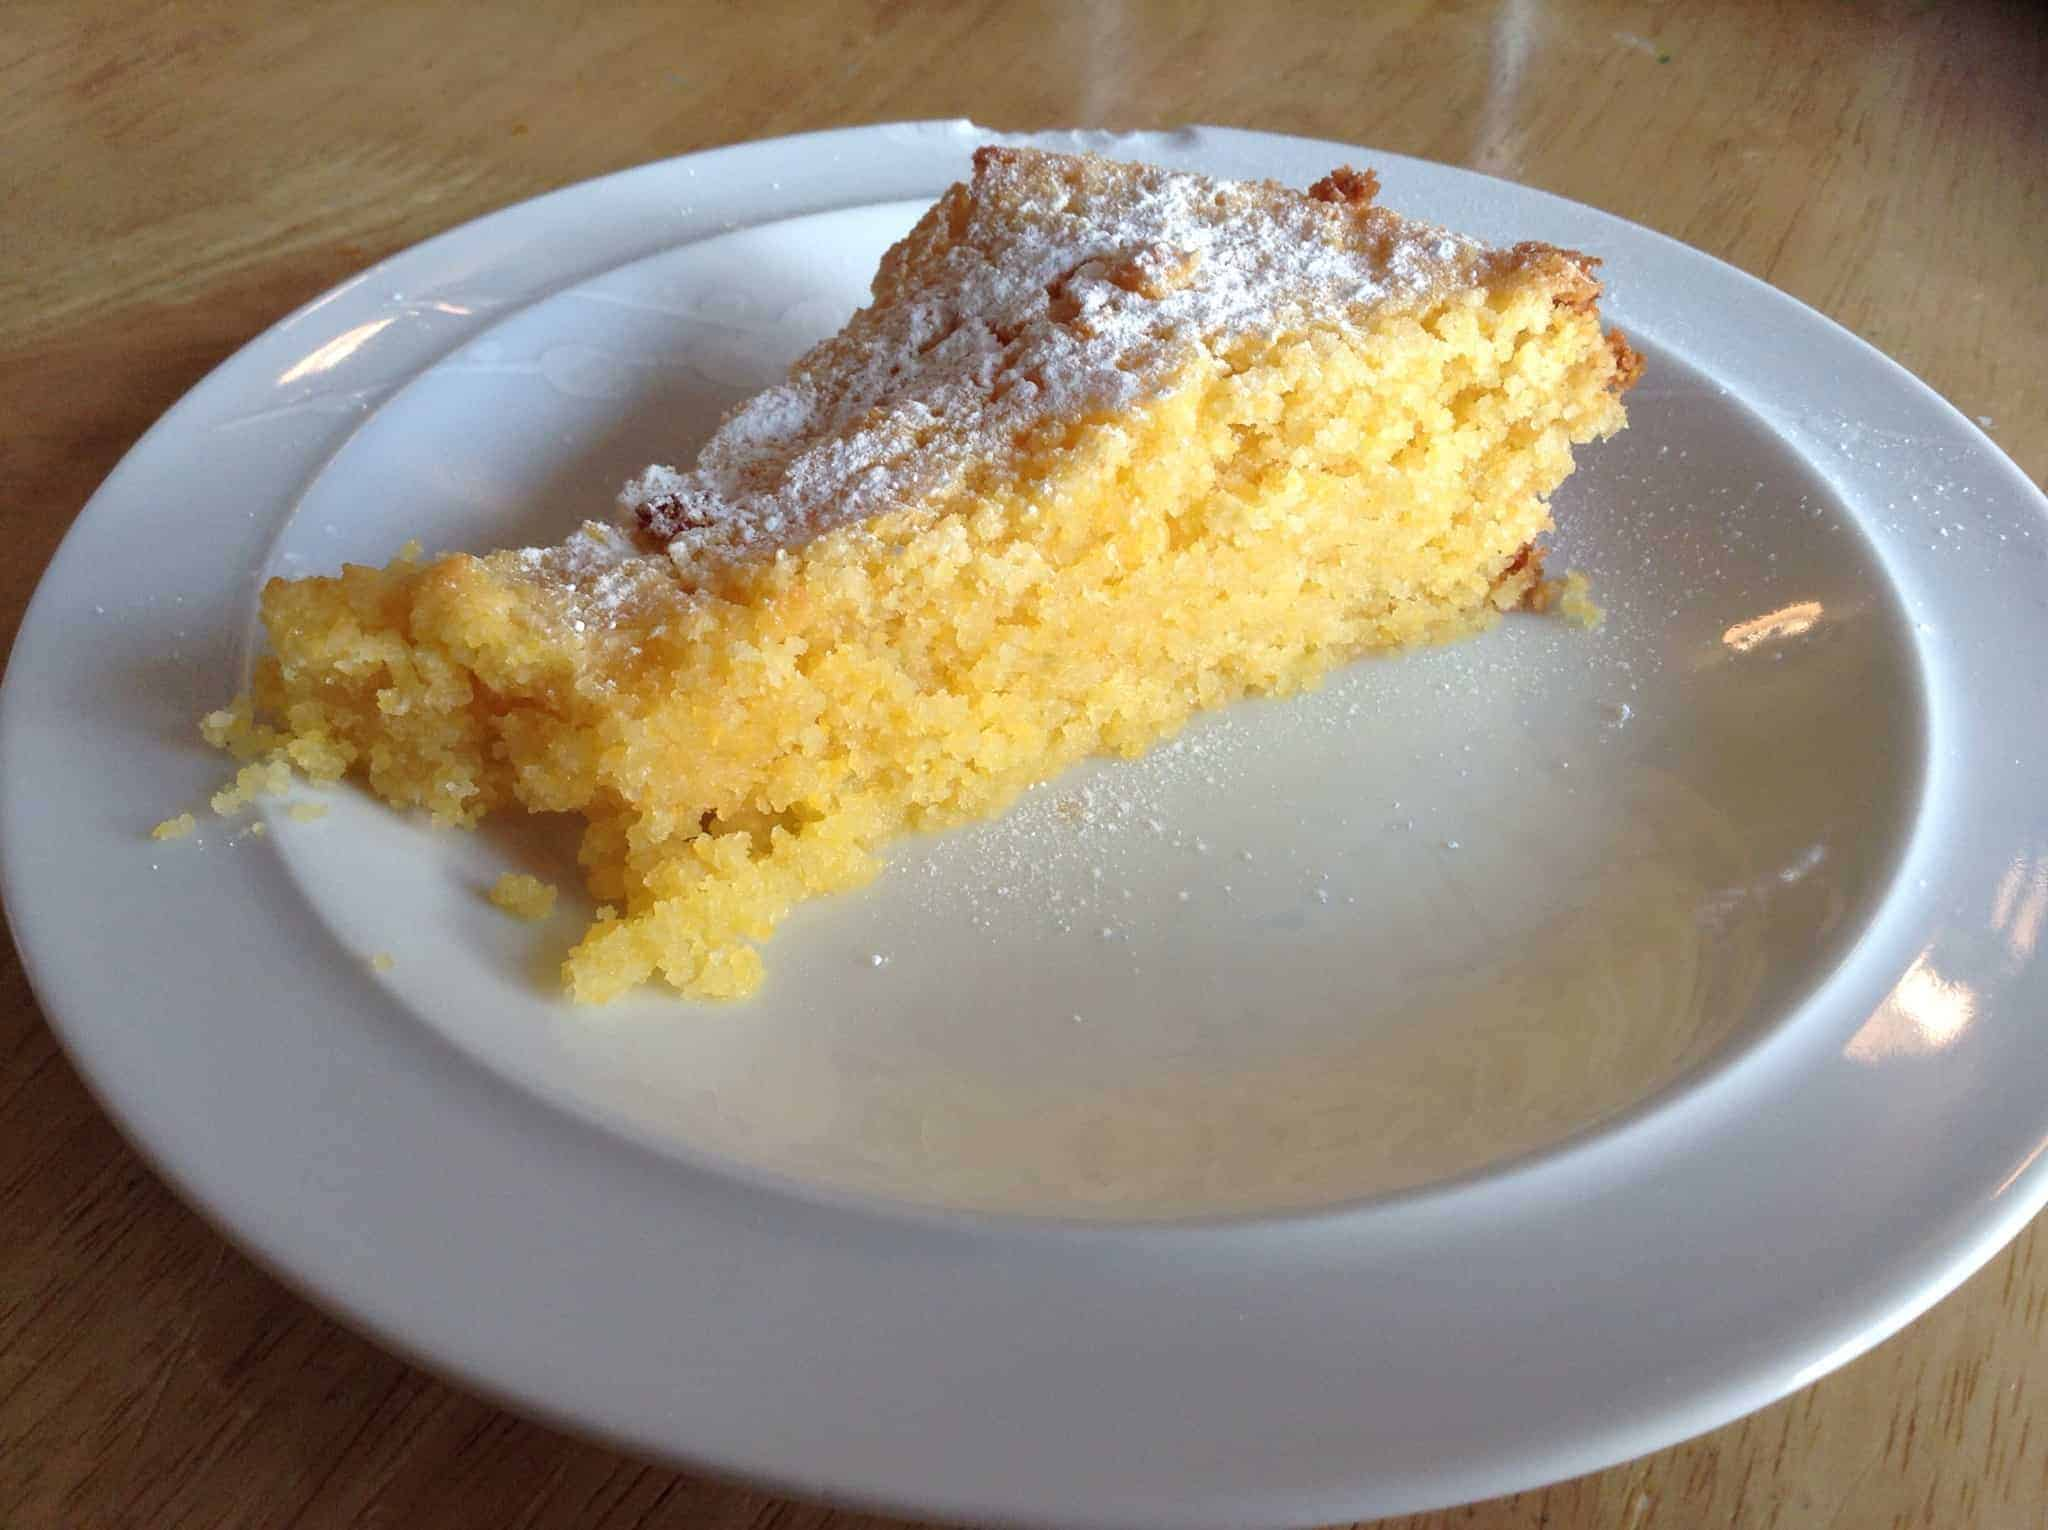 Slow cooker lime polenta cake